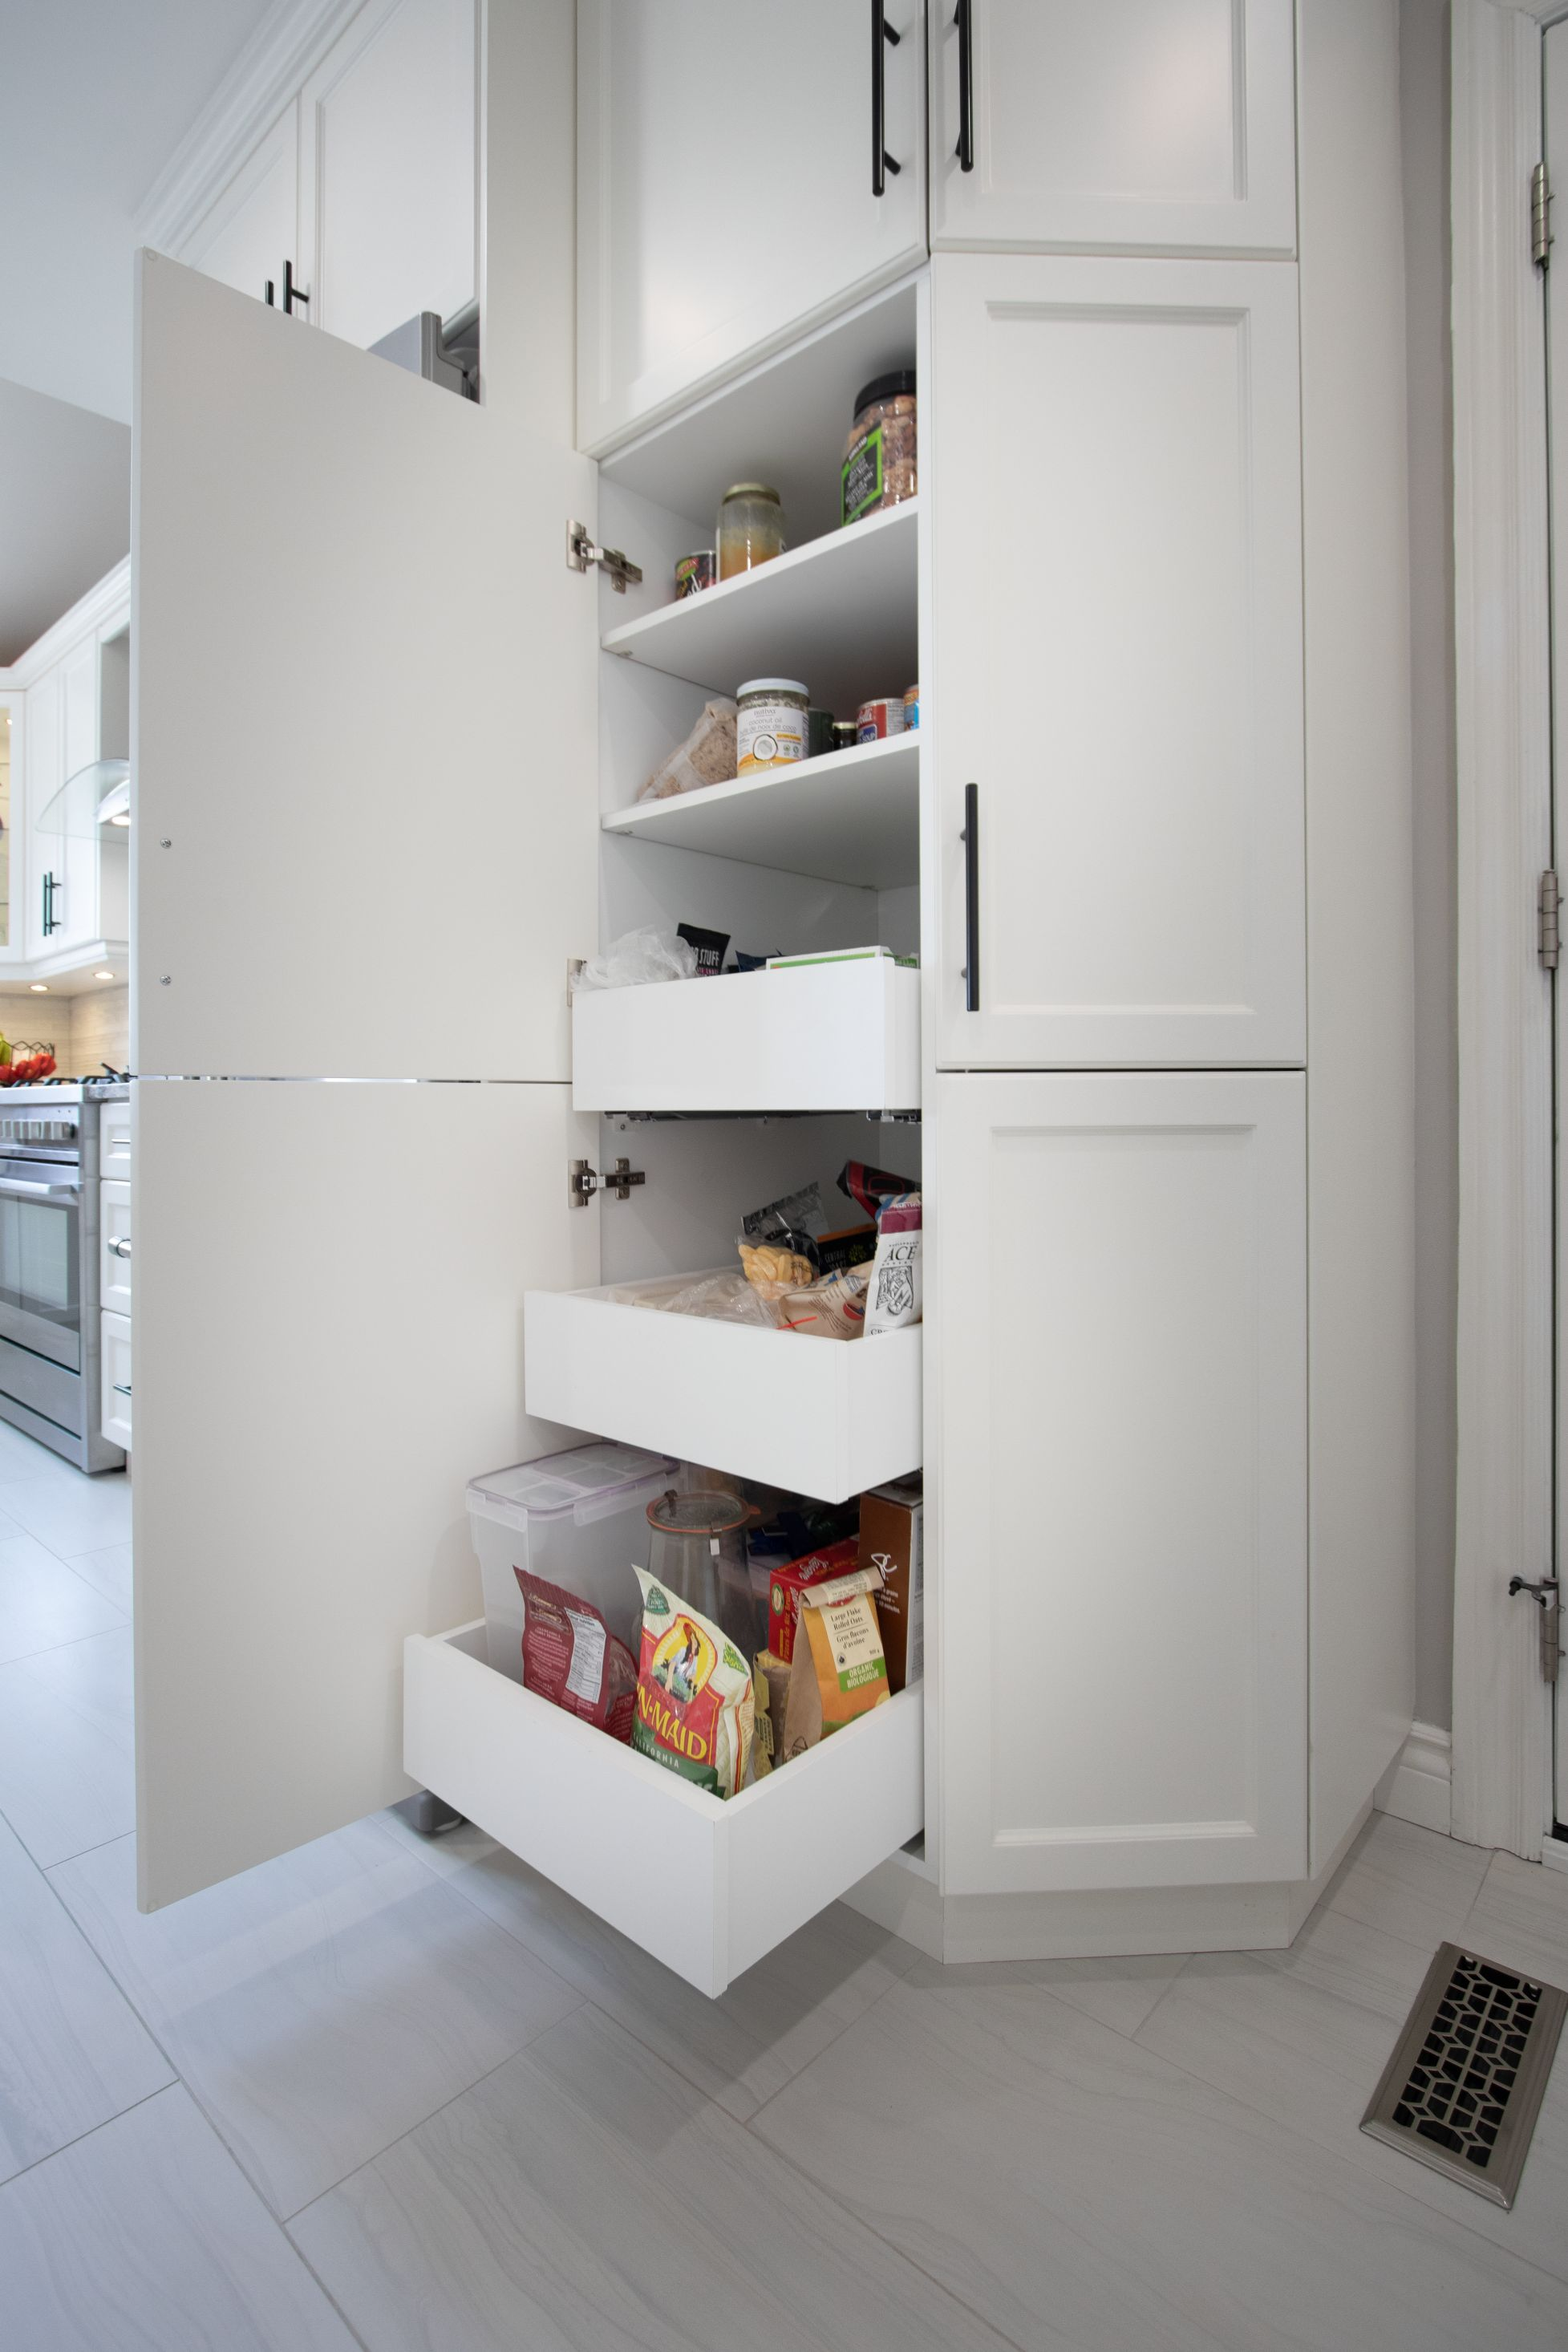 Gorgeous pantry with pull outs we designed and built for our client's custom kitchen renovation in Oshawa.